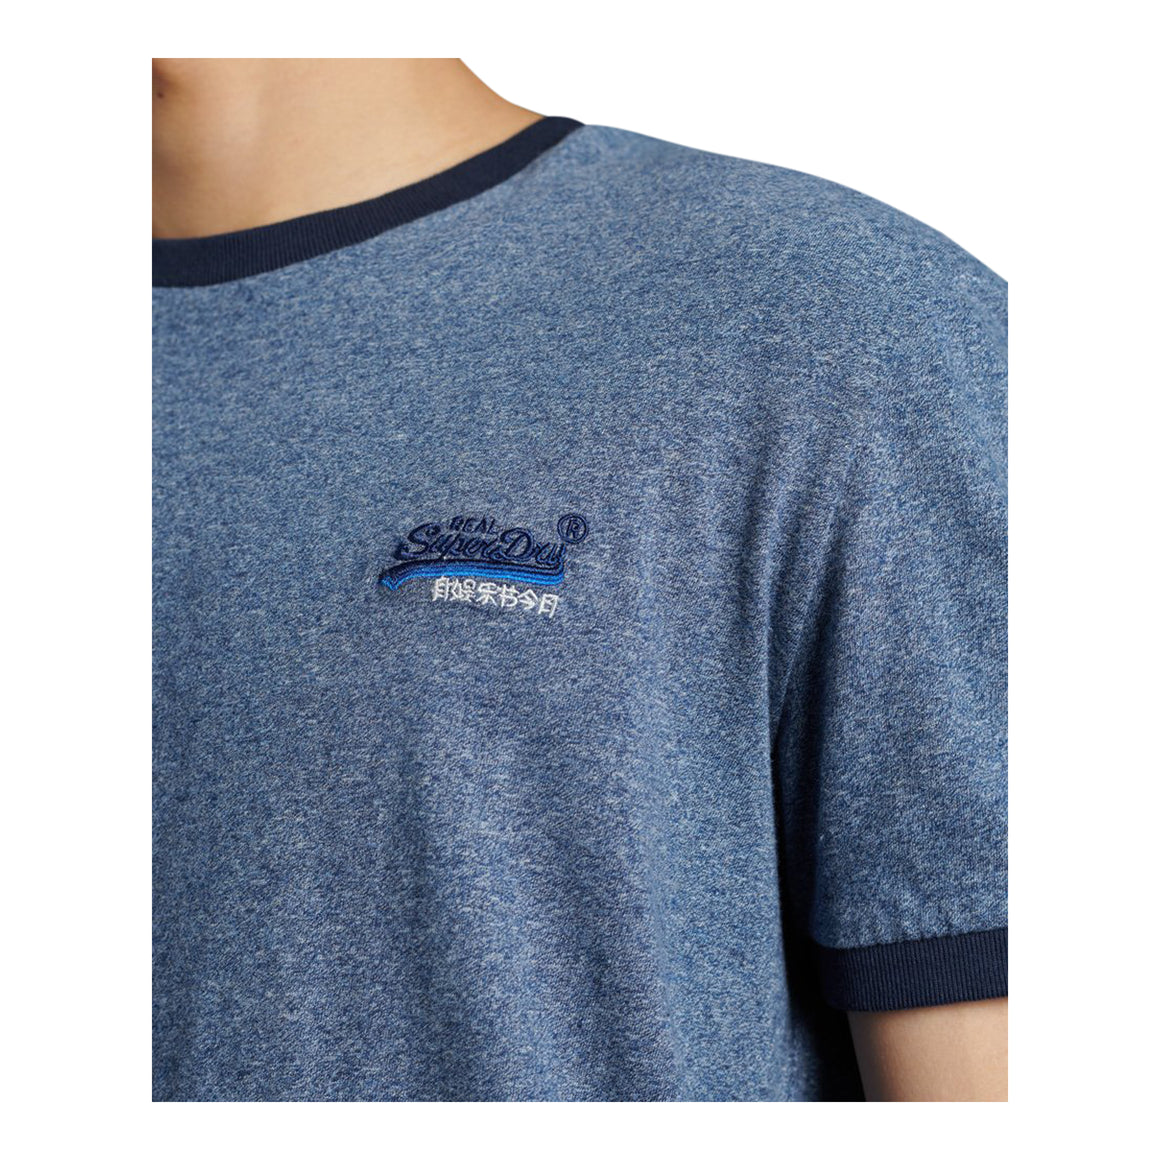 OL Ringer Tee for Men in Vintage Deep Blue Grit